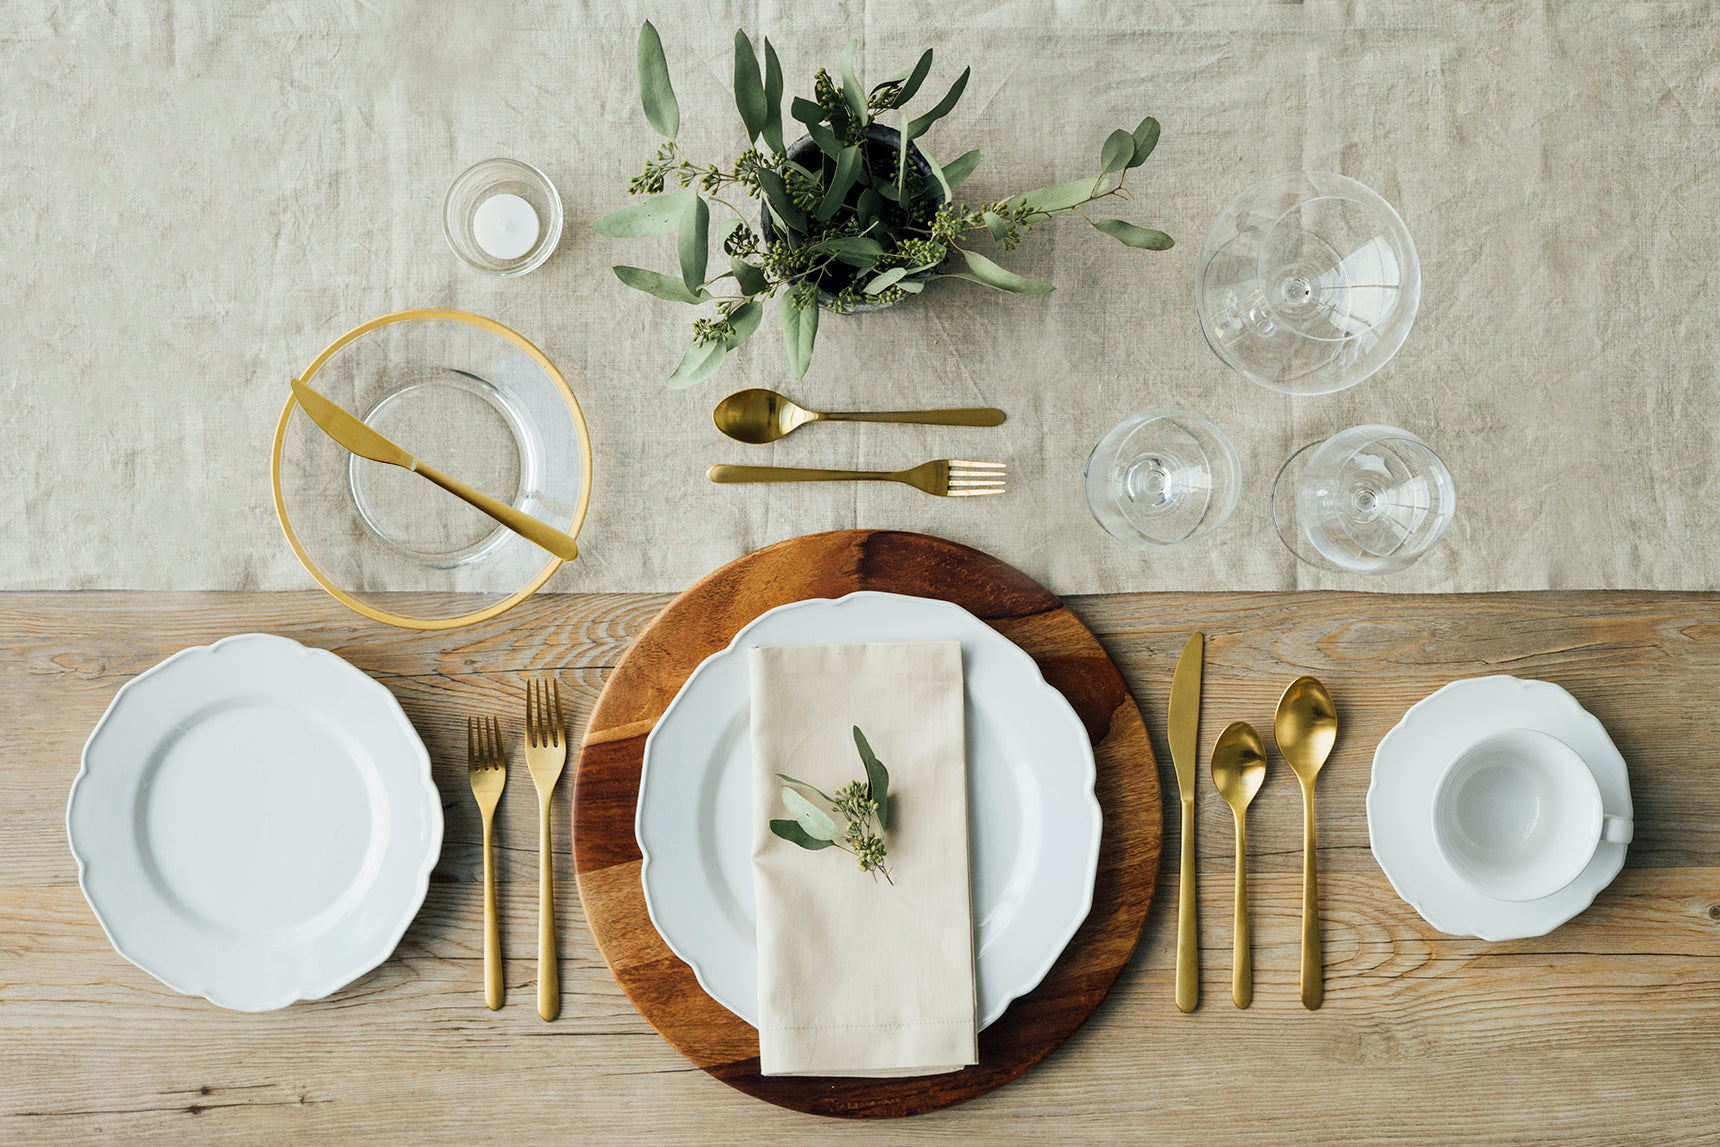 Basic Table Setting for any Occasion